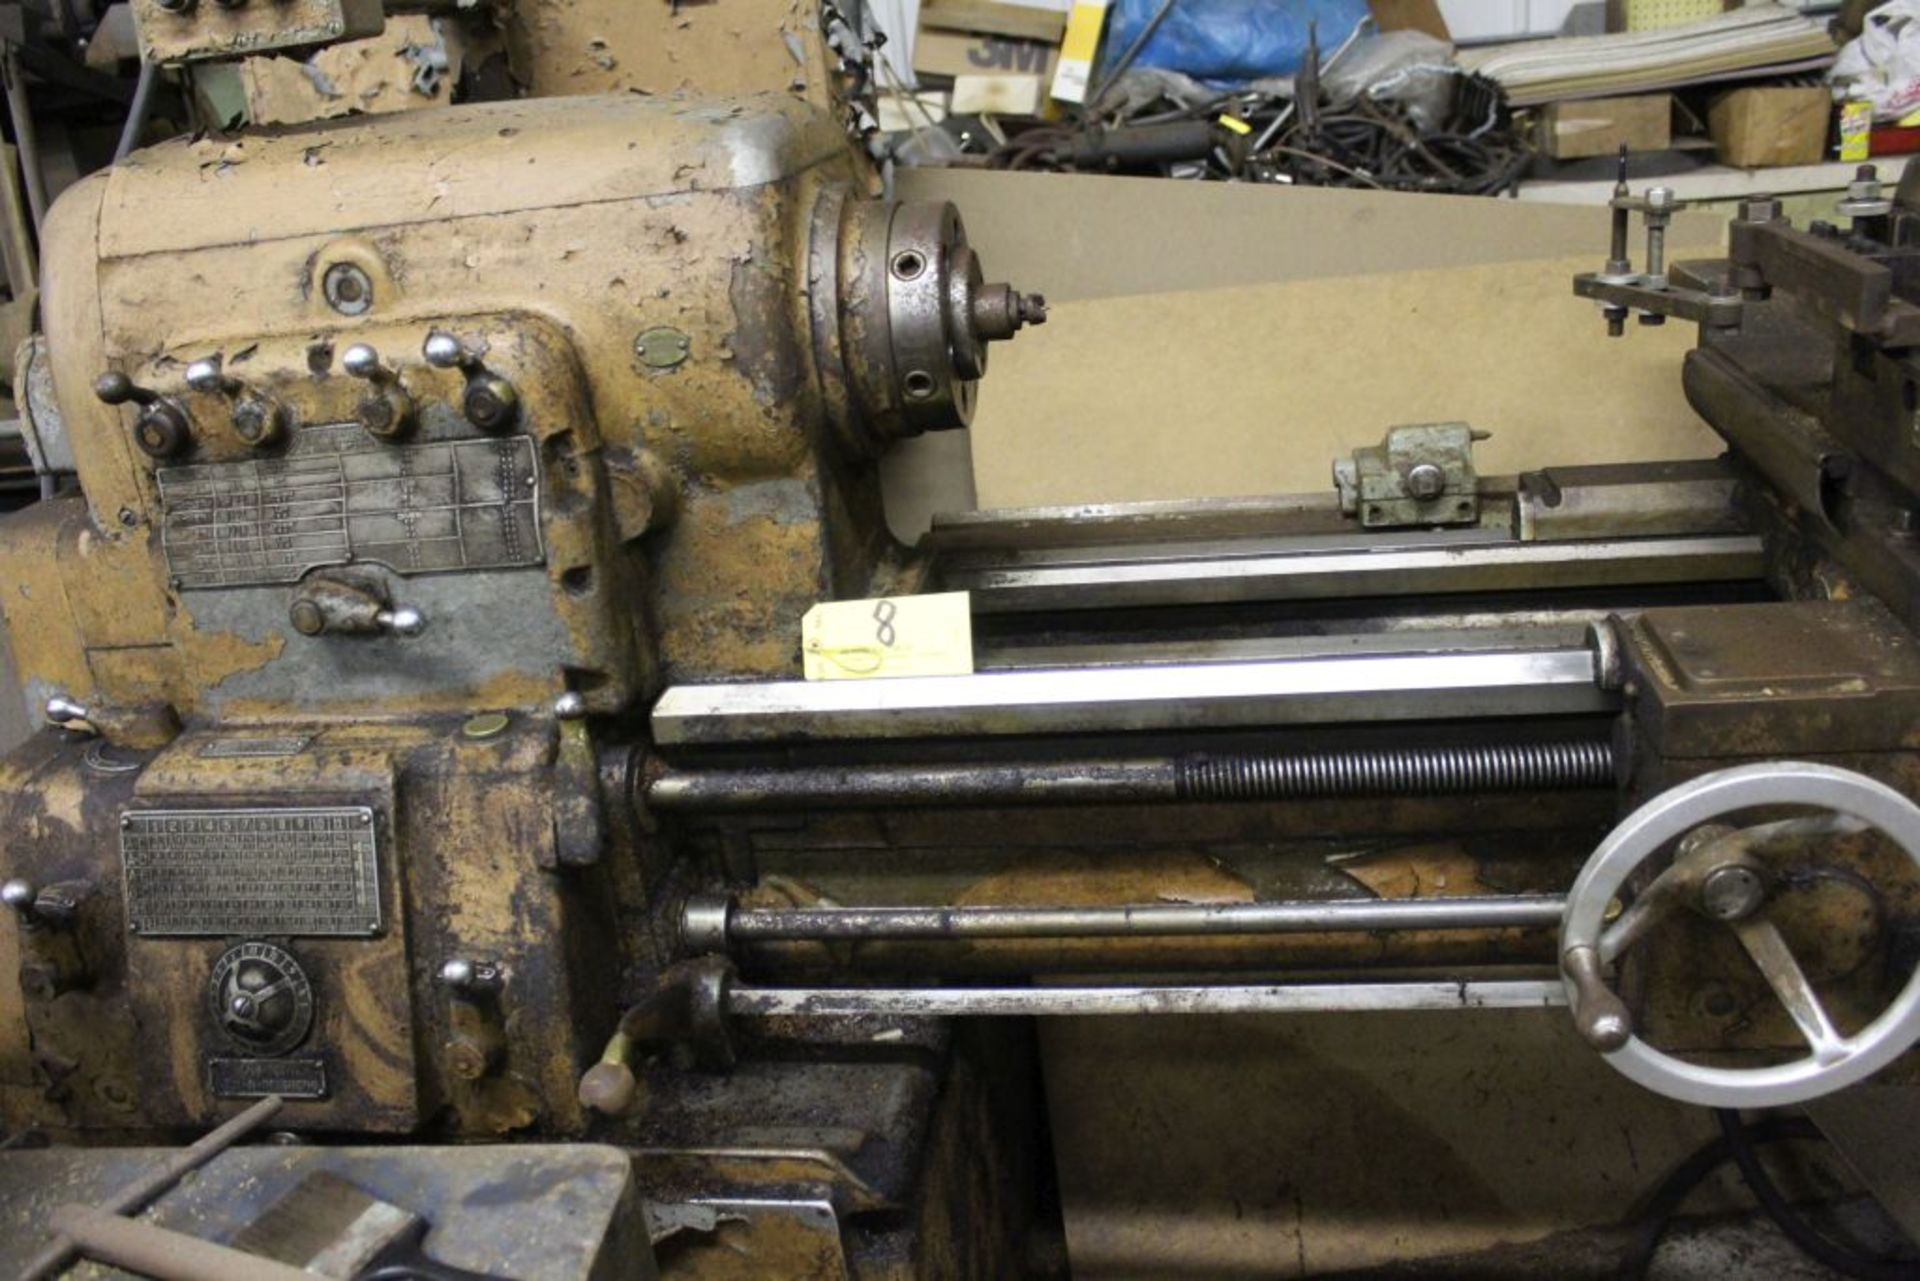 """1960 Monarch engine lathe, model 61, sn 44310-AT, 13 x 54, 20 1/2"""" swing, 79"""" bed, 55"""" center to - Image 6 of 8"""